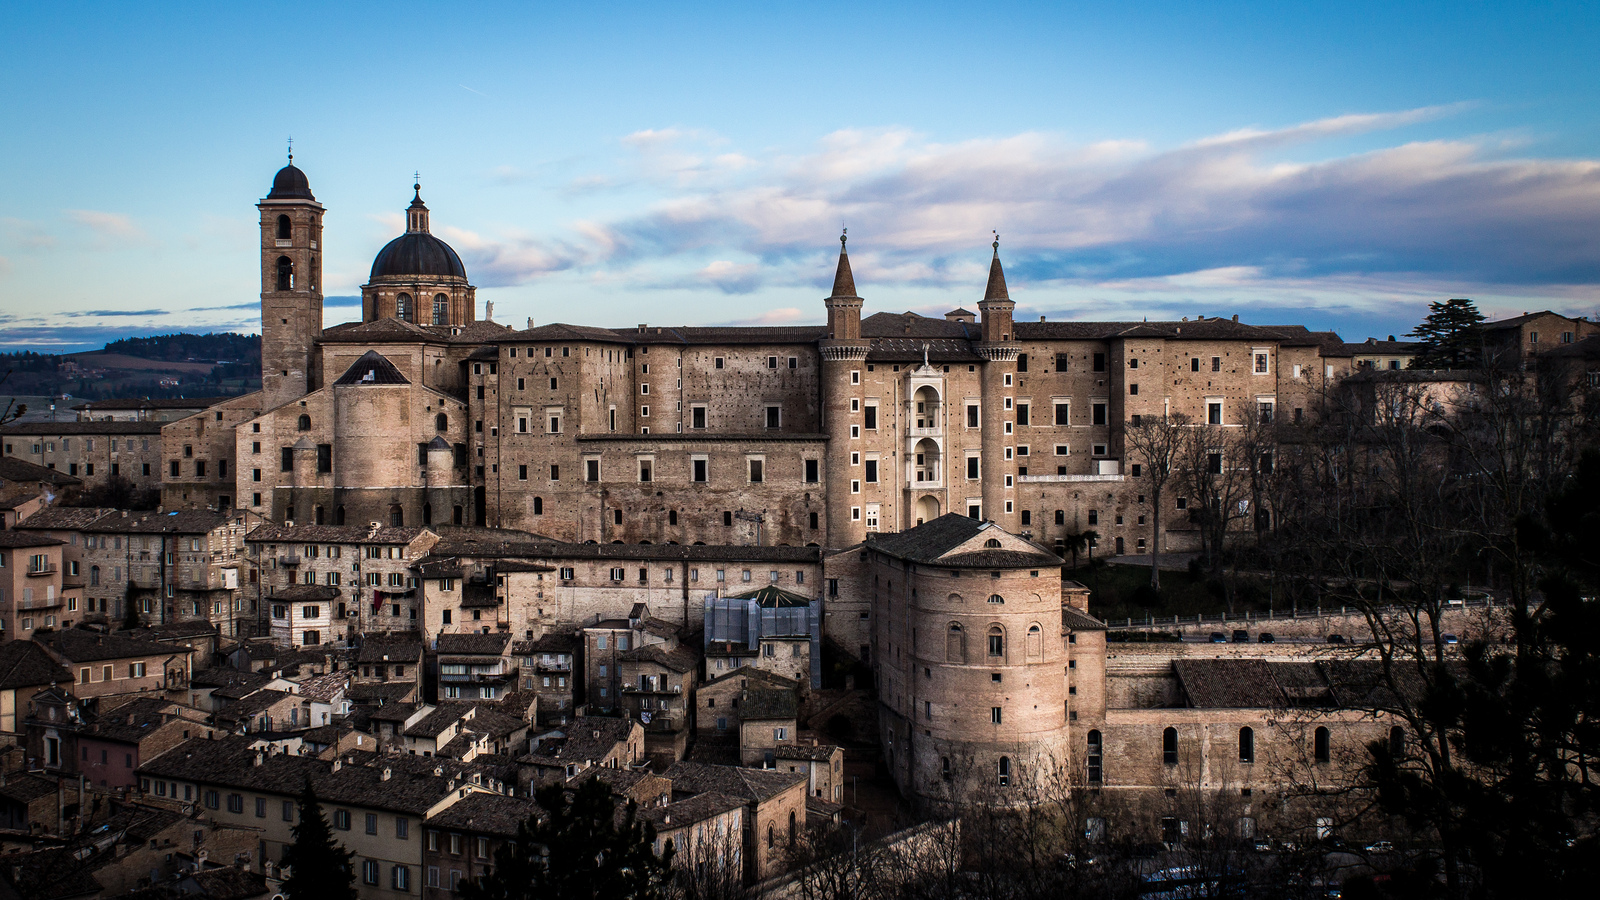 unesco-urbino-simbolo-del-rinascimento-secret-world